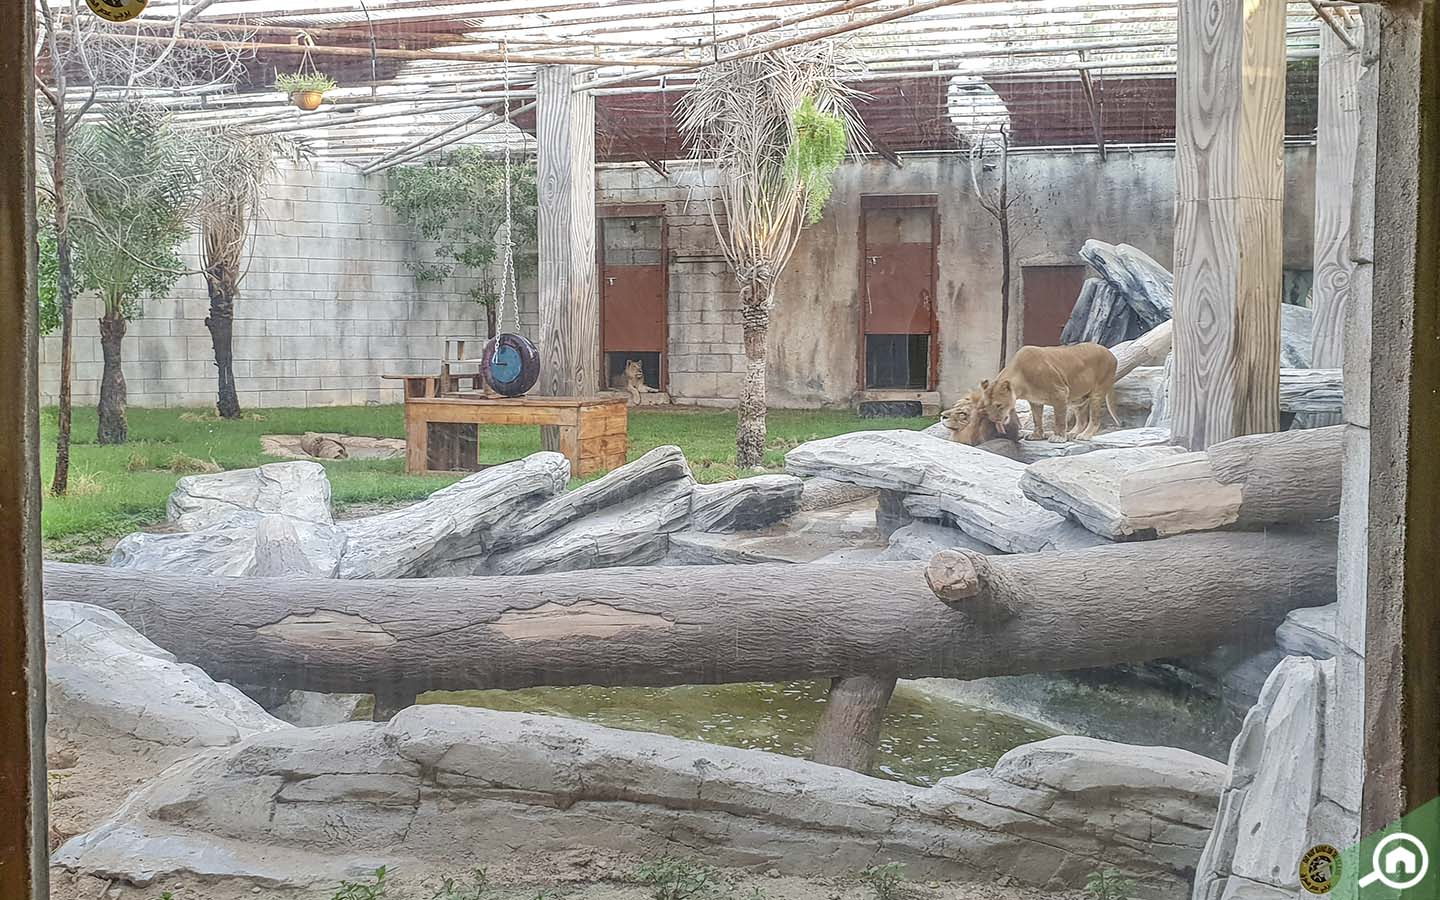 Lions in Emirates Park Zoo